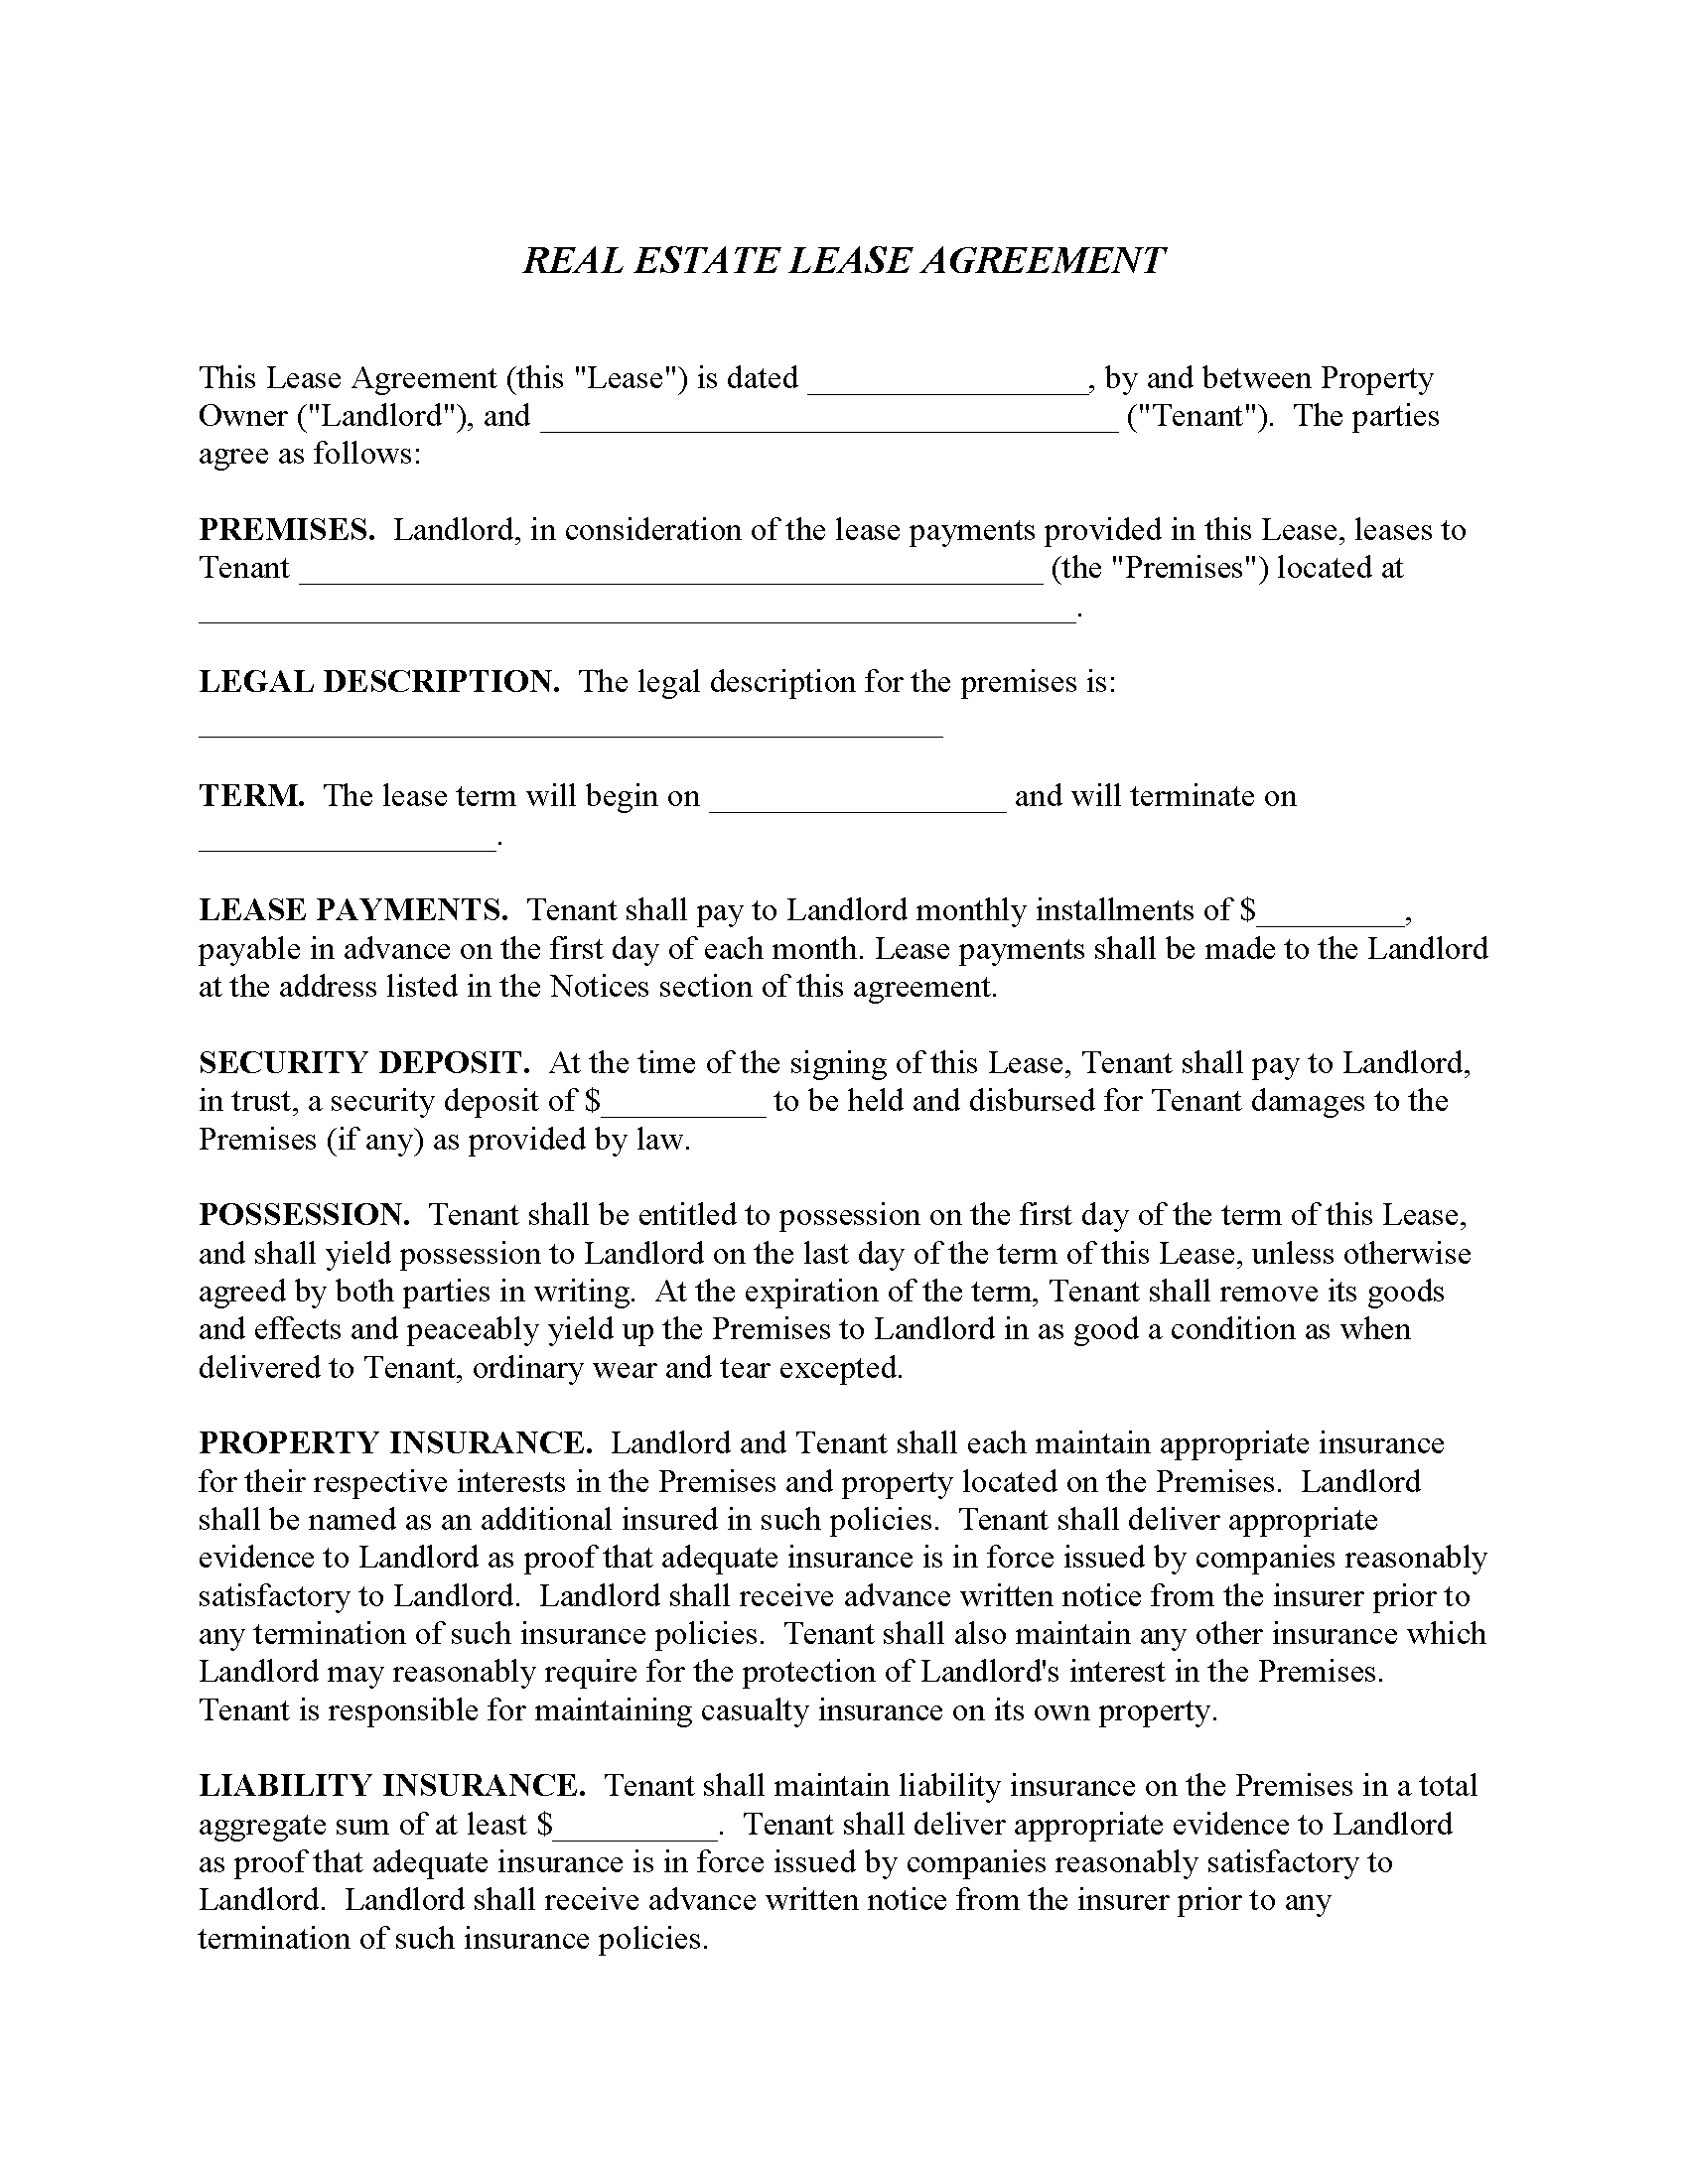 Commercial Property Lease Agreement Fillable PDF Form